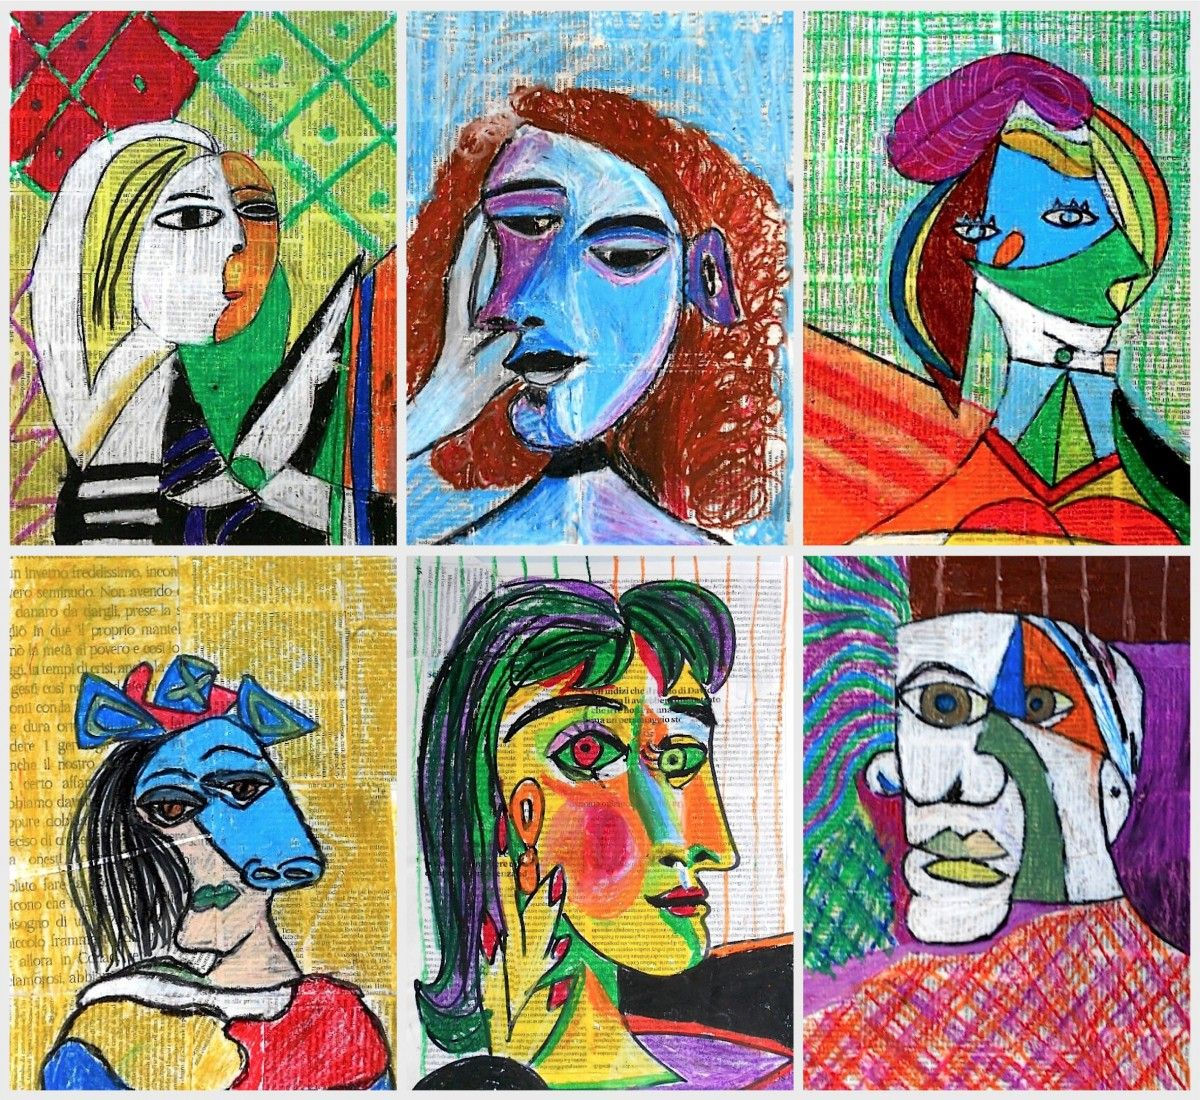 Mixed media portraits by Picasso | Picasso art, Picasso ...